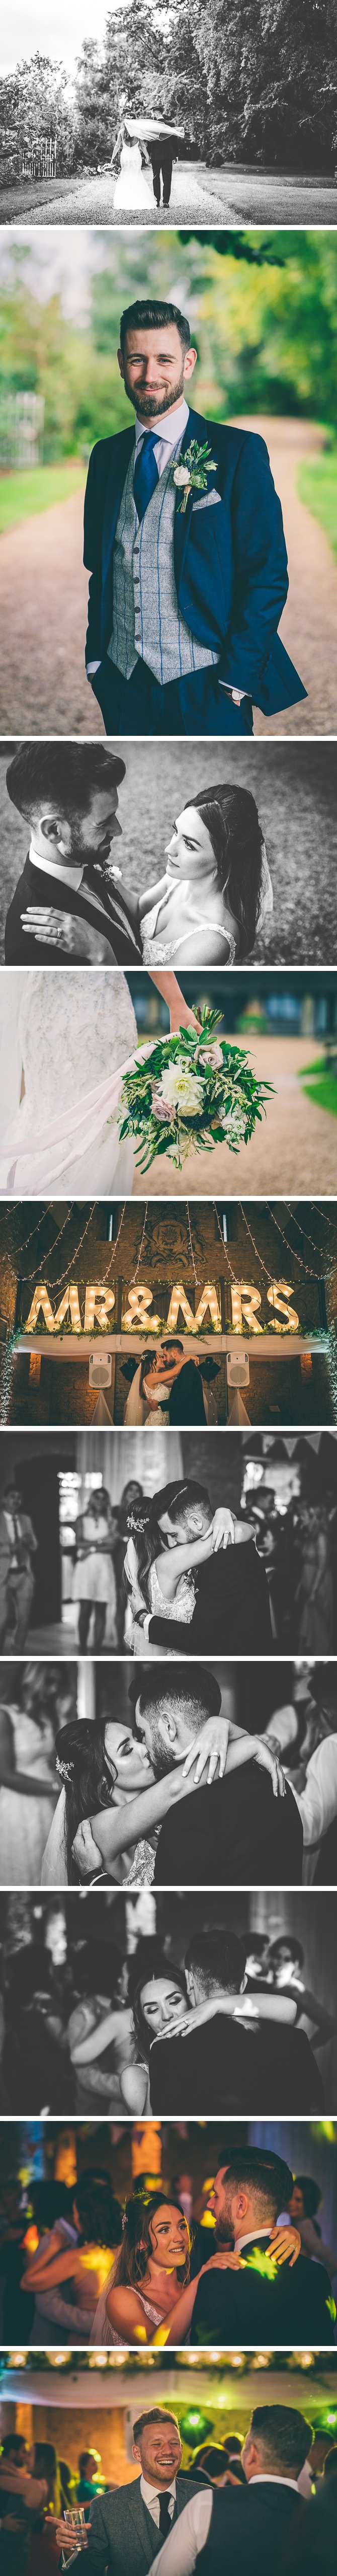 First Dance Photos at The Great Tythe Barn